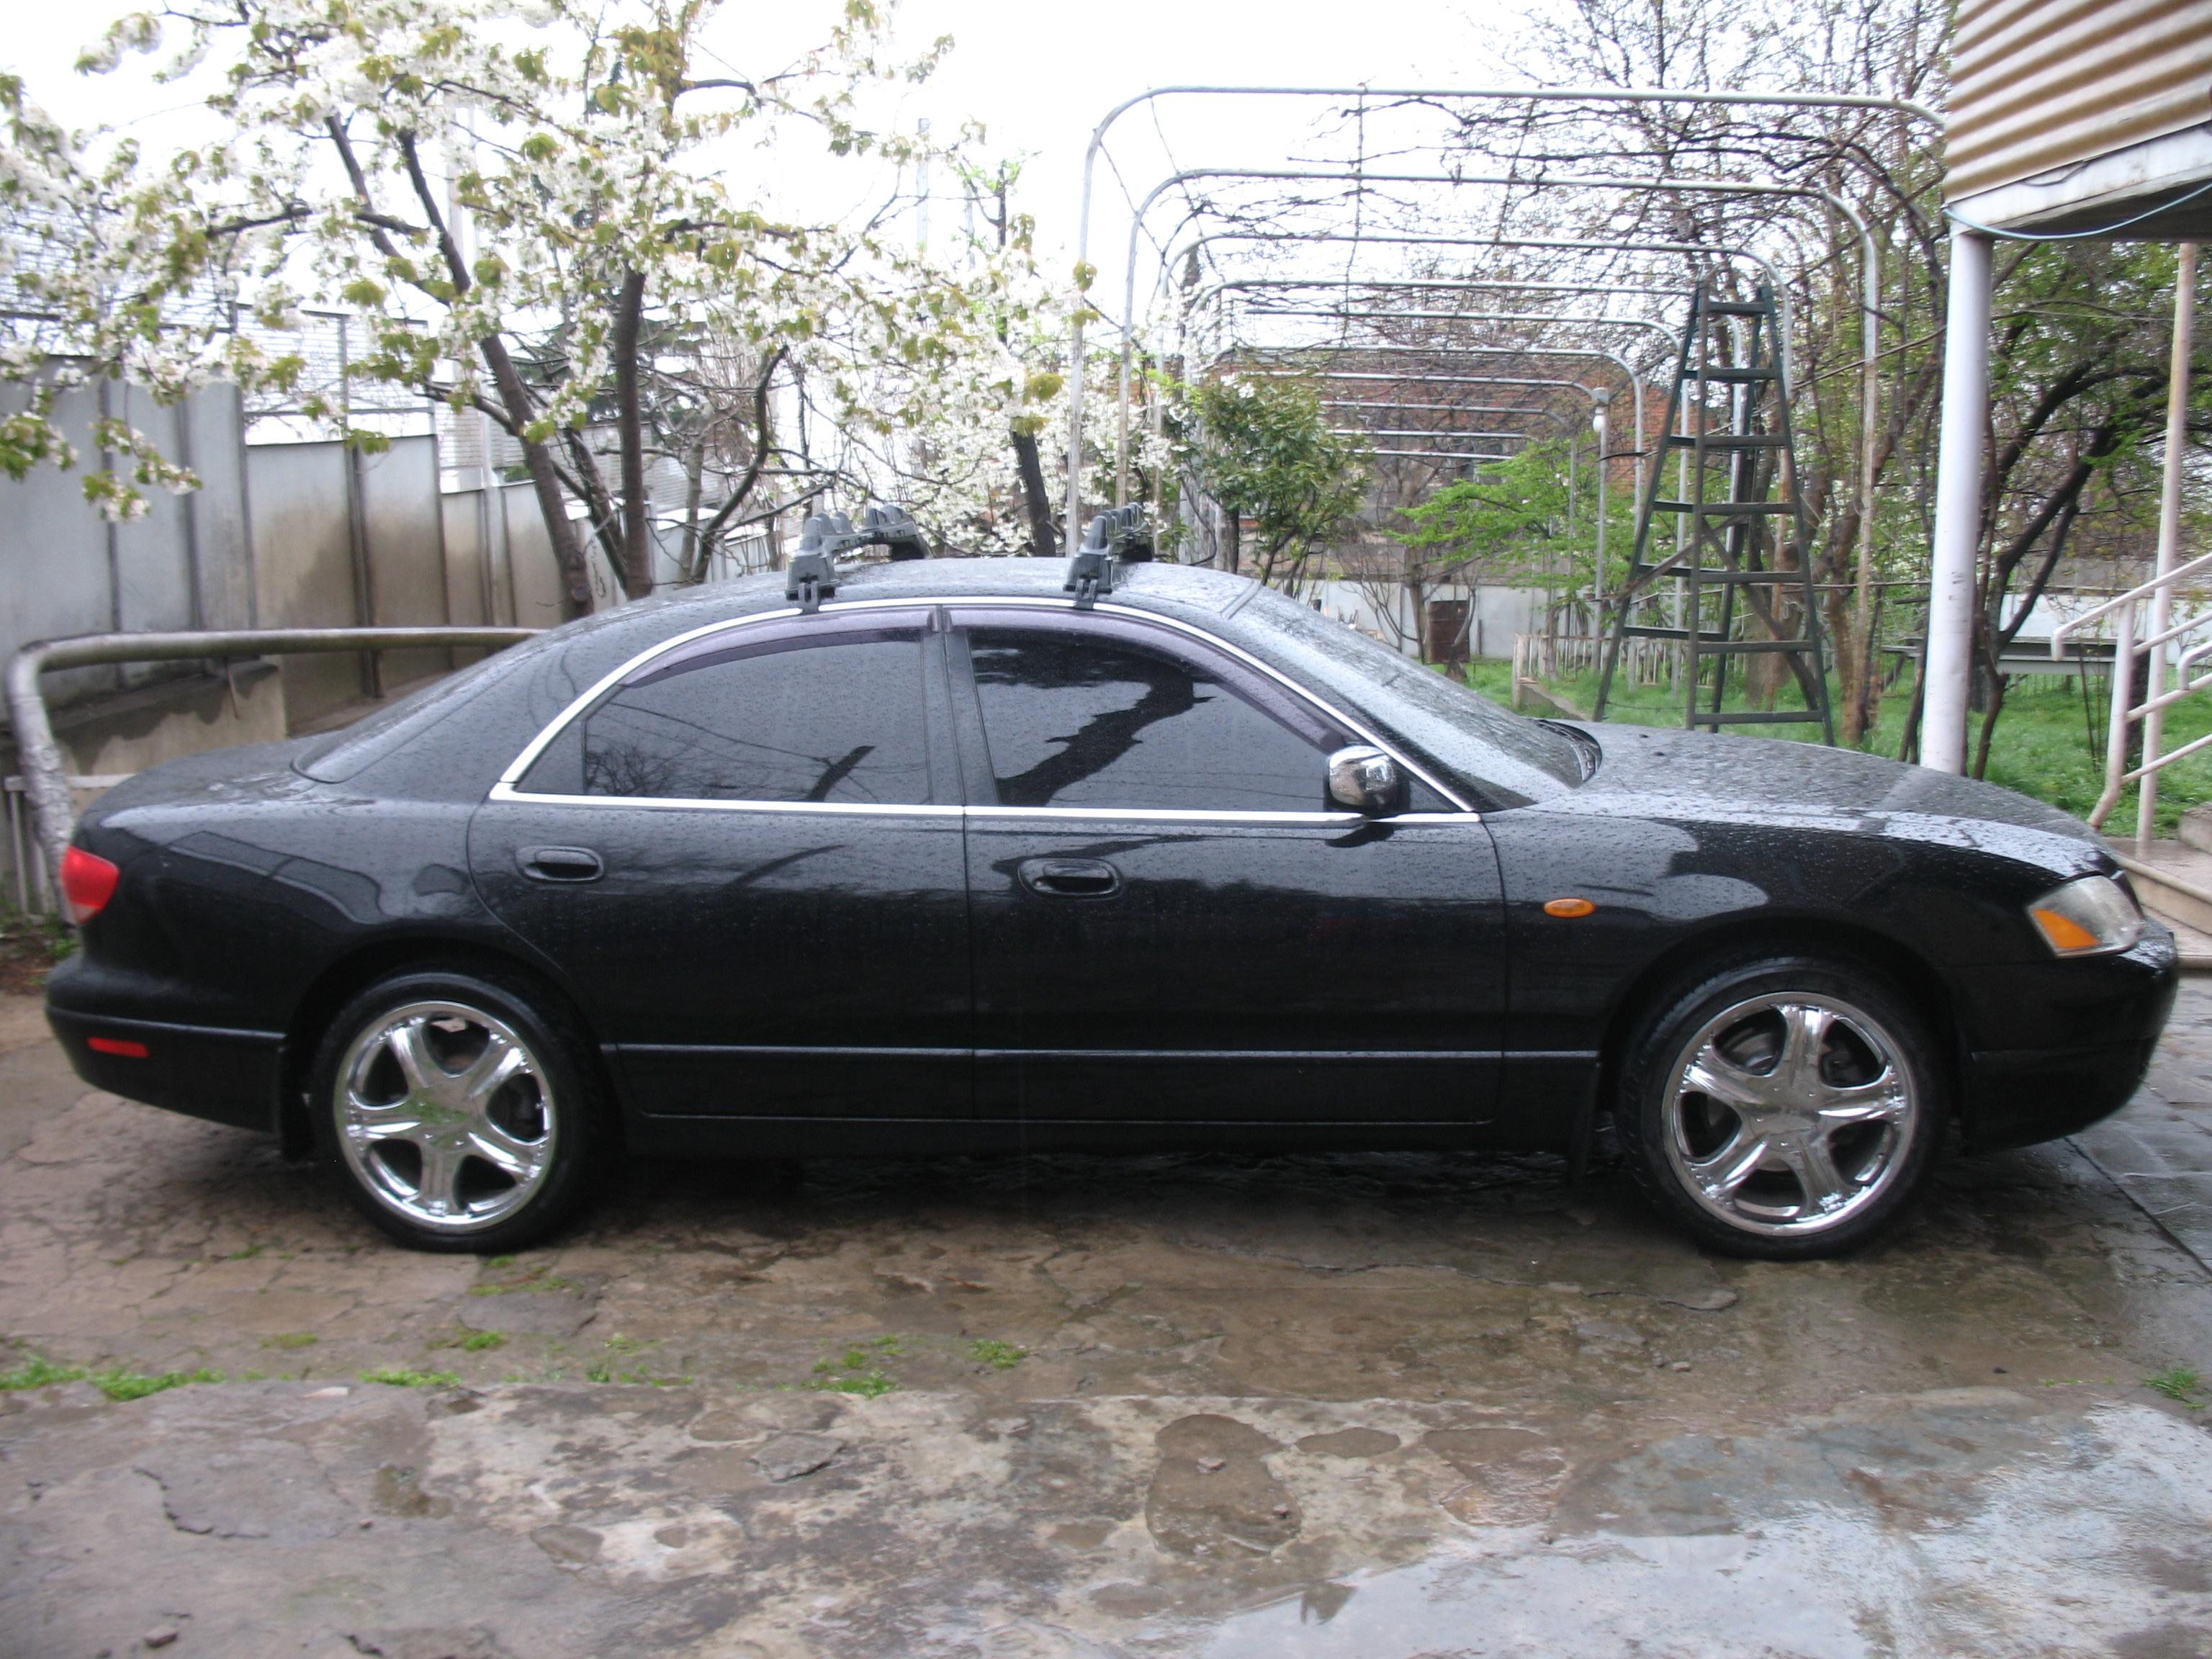 280184 2001 mazda millenia specs, photos, modification info at